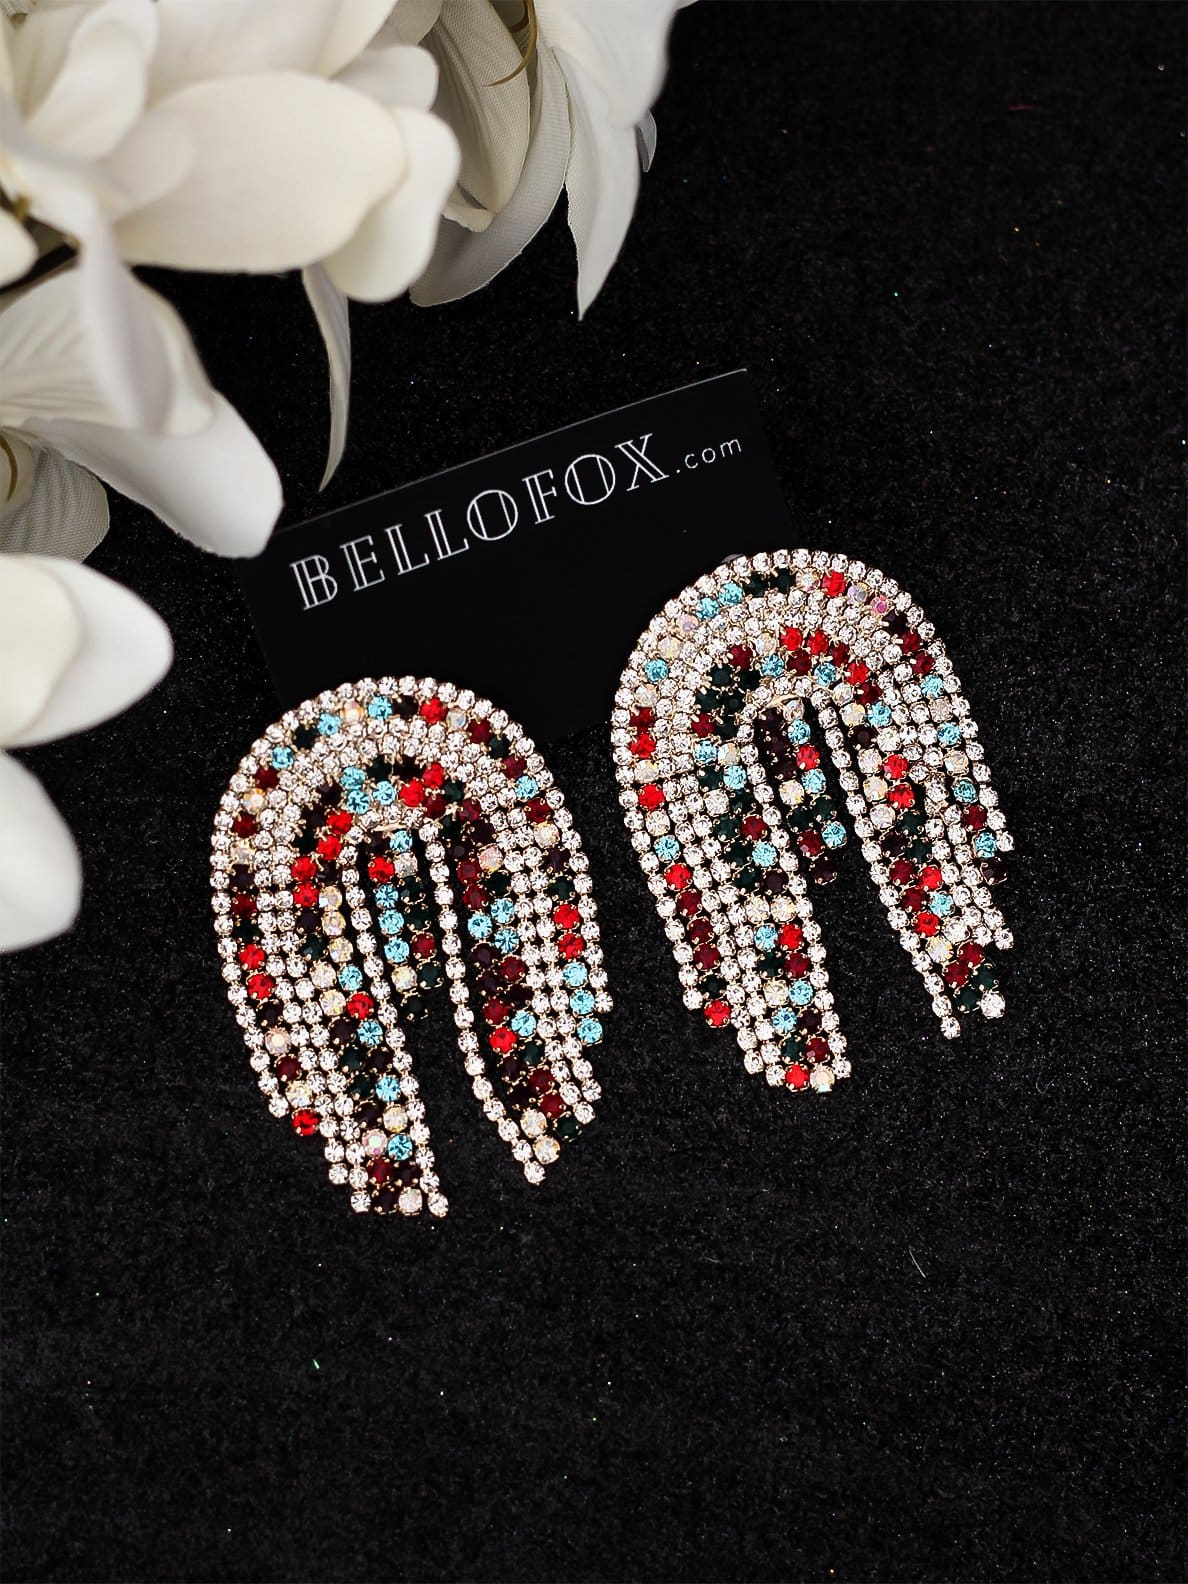 Bellofox Rhine Rains Earrings BE3482